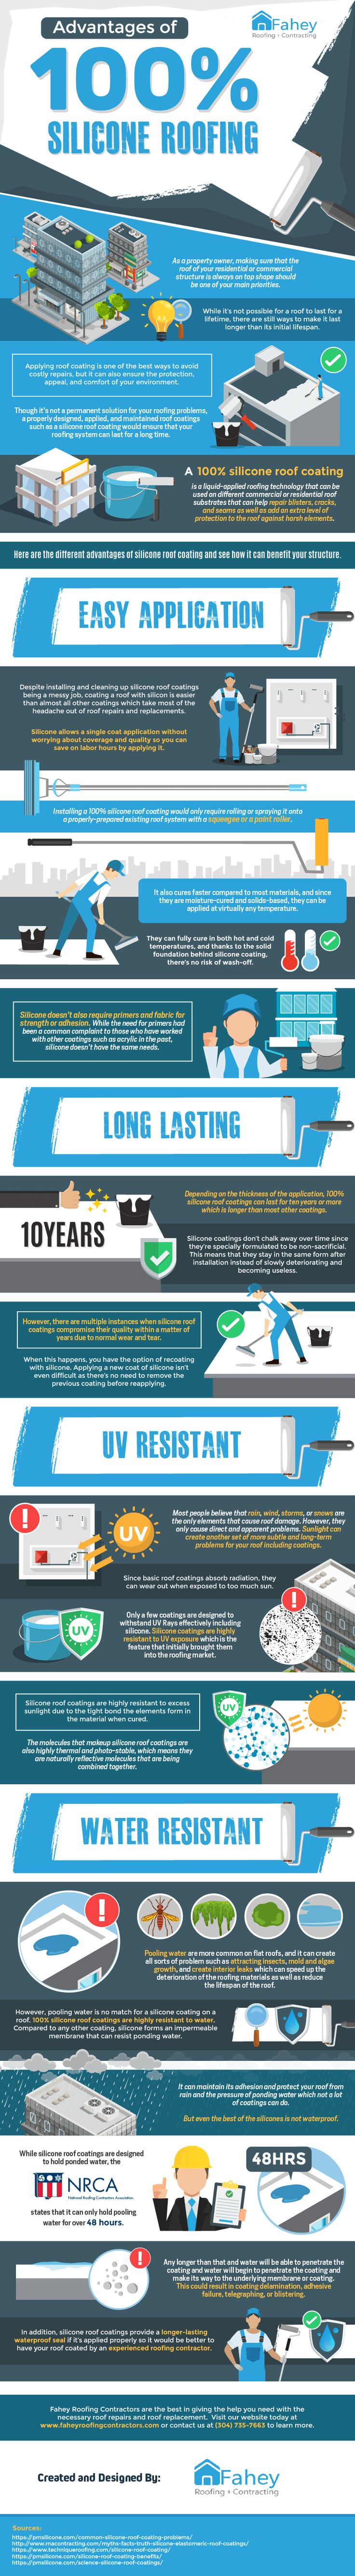 Advantages Of 100 Silicone Roofing Infographic 2020 Infographic Aesthetic Value How To Run Longer